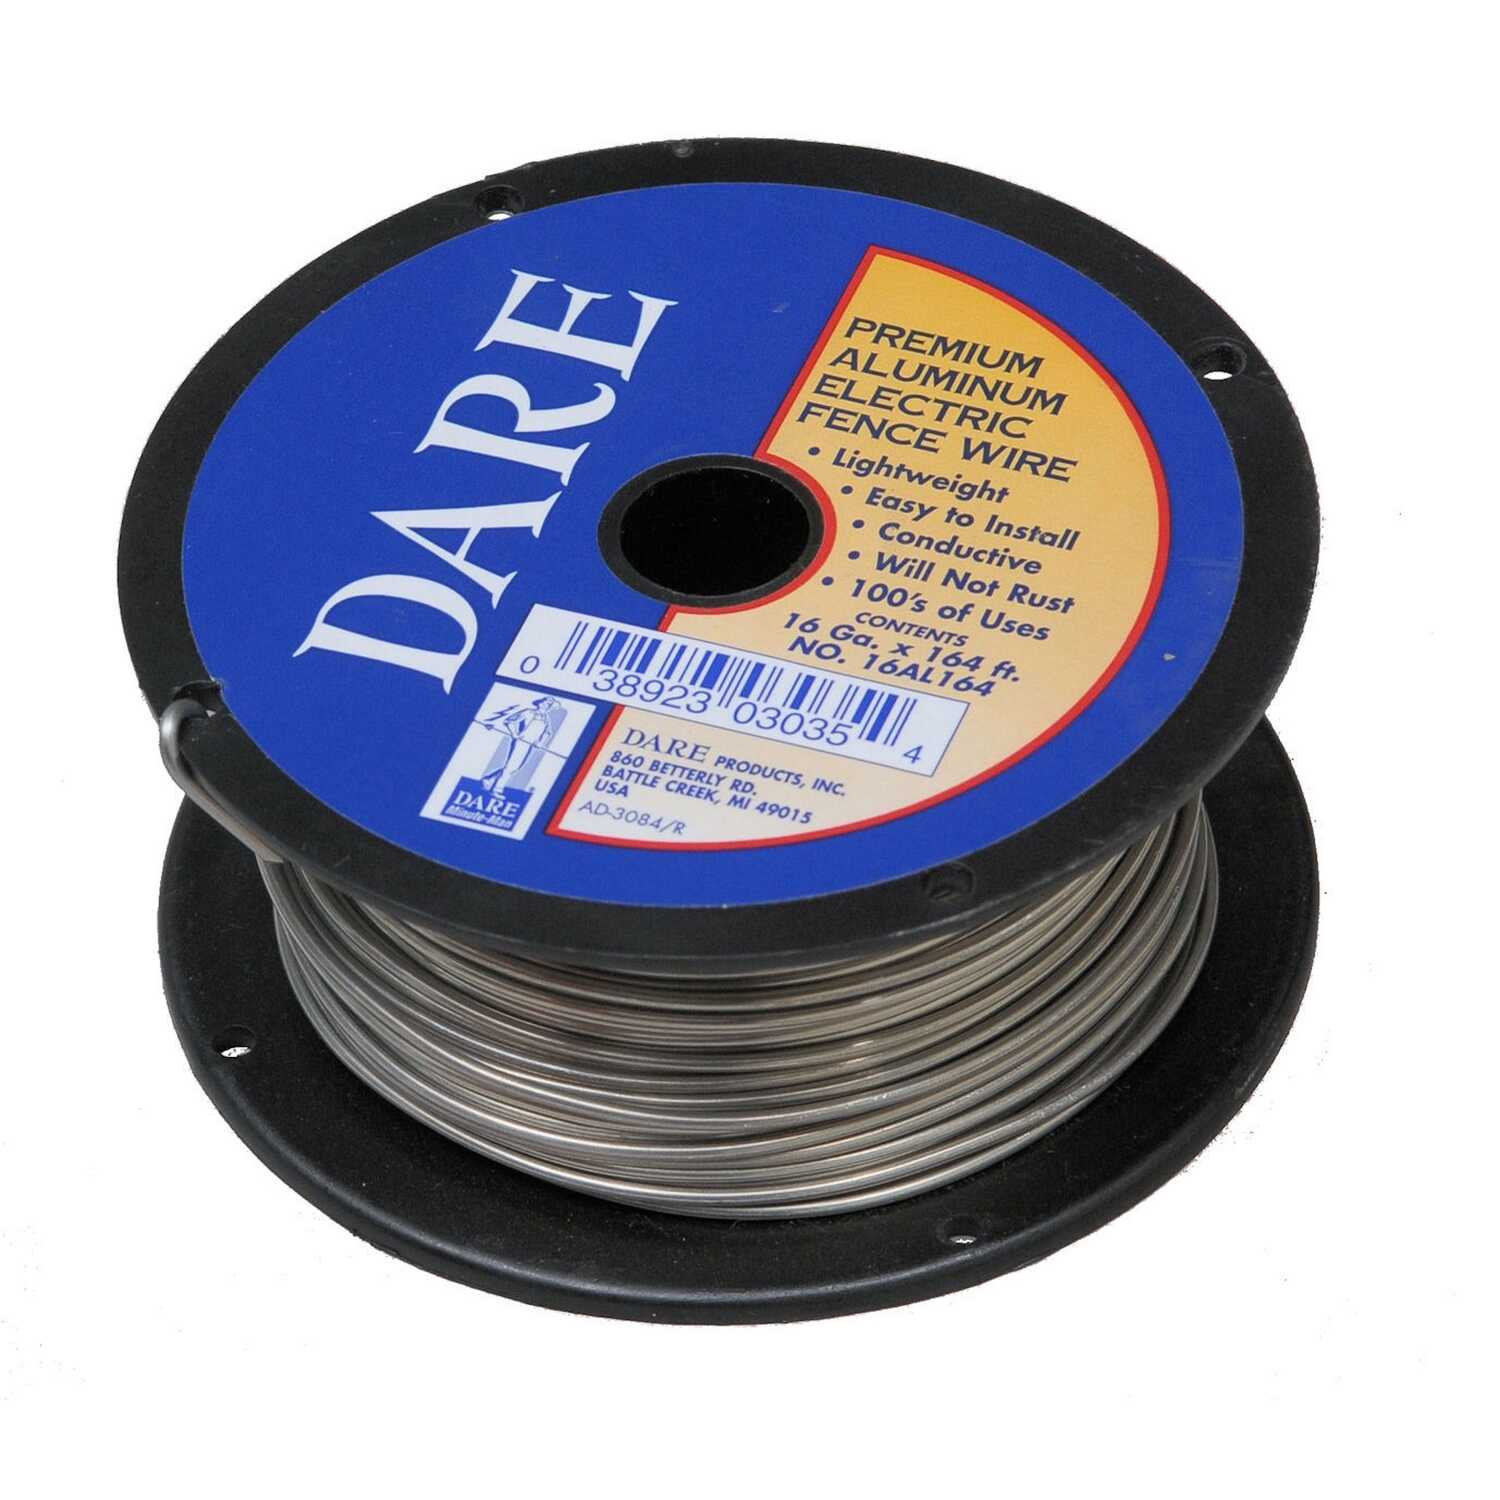 Dare Products Premium Electric Fence Wire Silver Ace Hardware